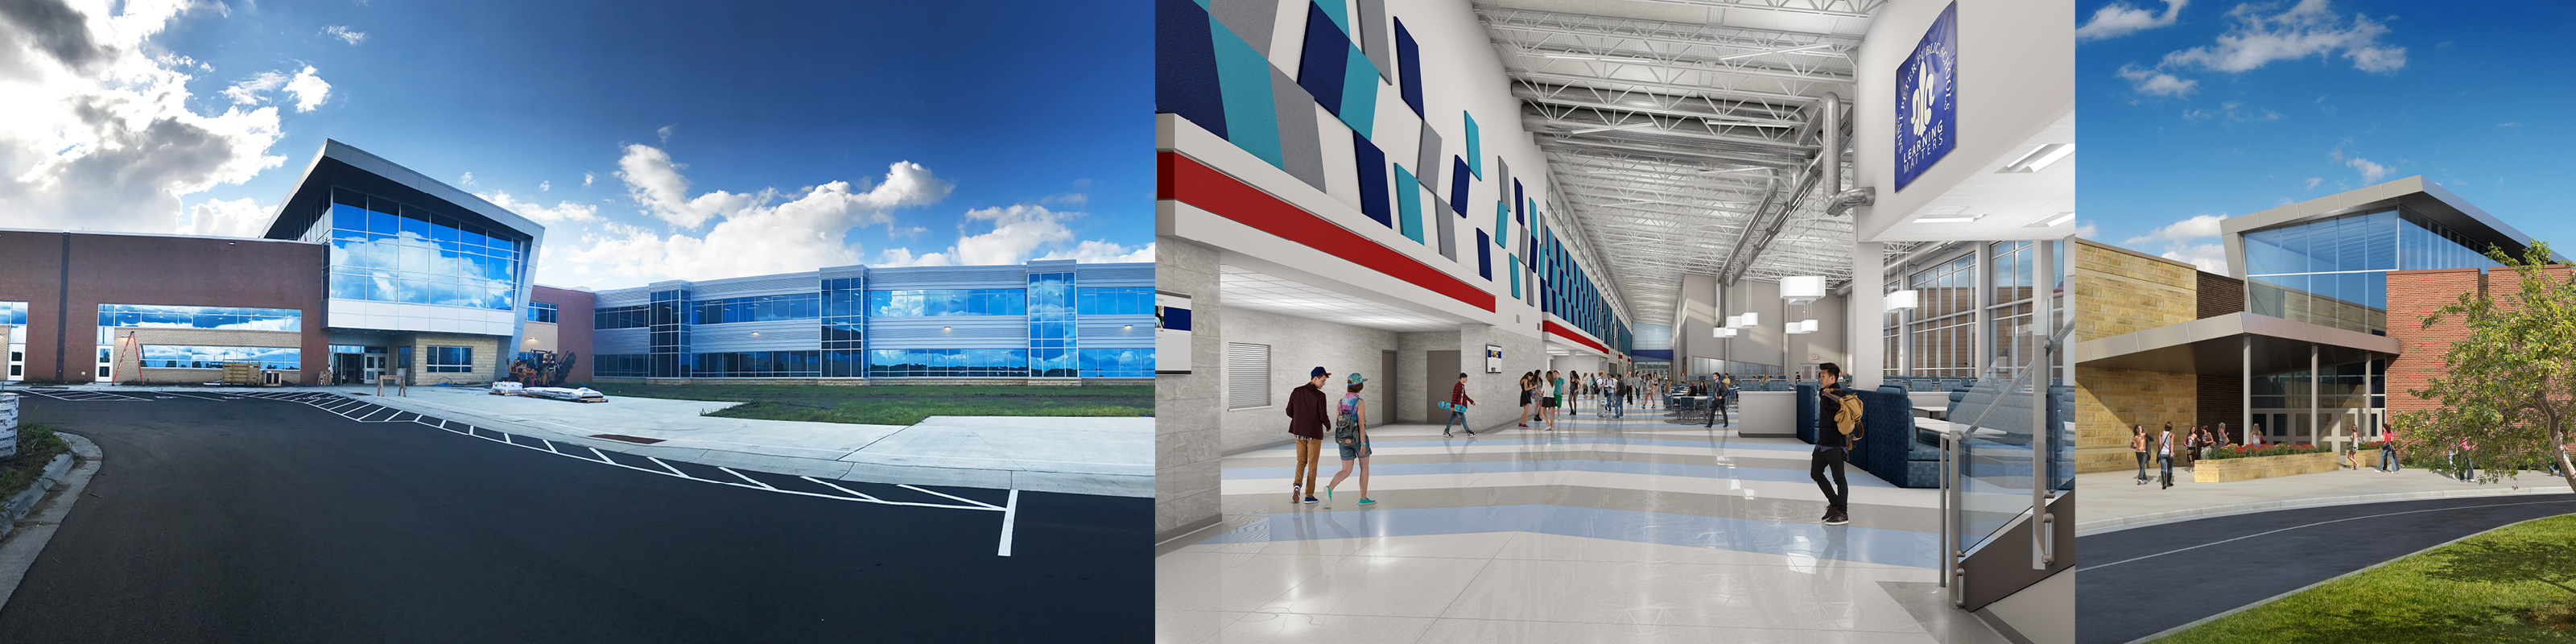 photo collage of St. Peter High School in St. Peter, Minnesota